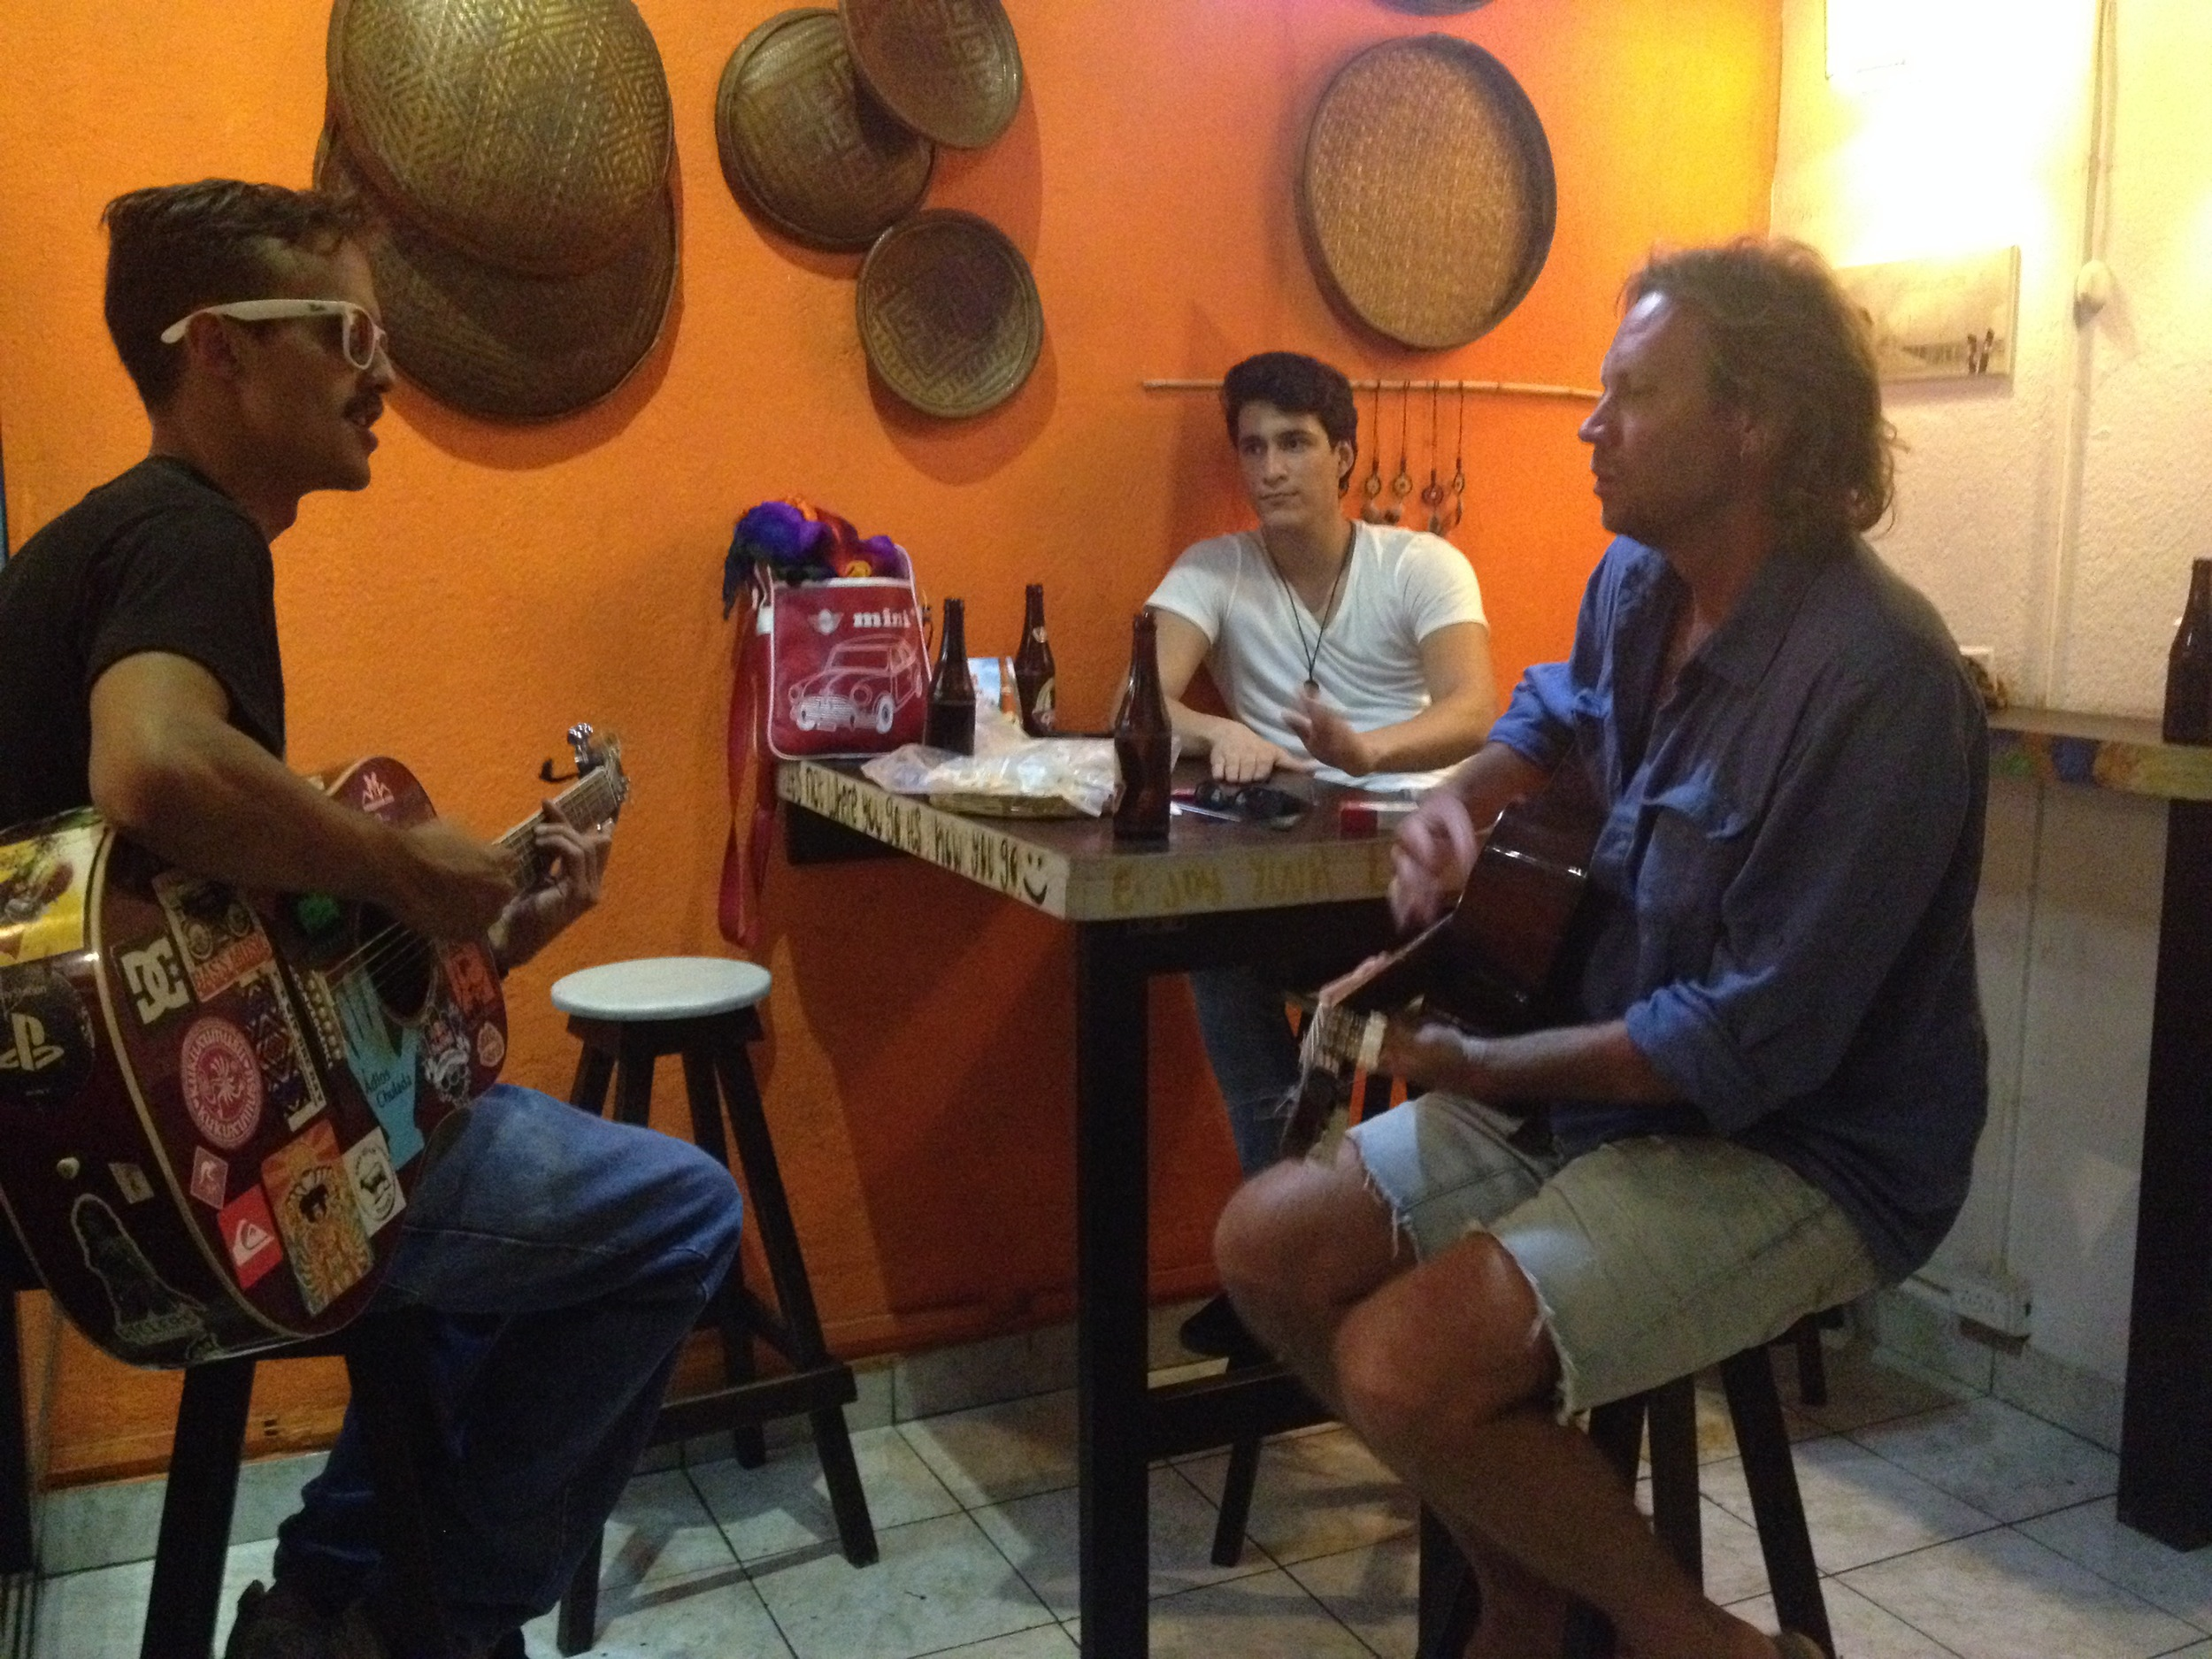 Improvisational music breaks out at a hole-in-the-wall Honduran cafe I hang out with Nayo (on the left). Nayo is a riot: graphic designer, chef, entrepreneur and also the great, great son of José Cecilio Díaz Del Valle, who was instrumental in Central America's independence from colonial government.